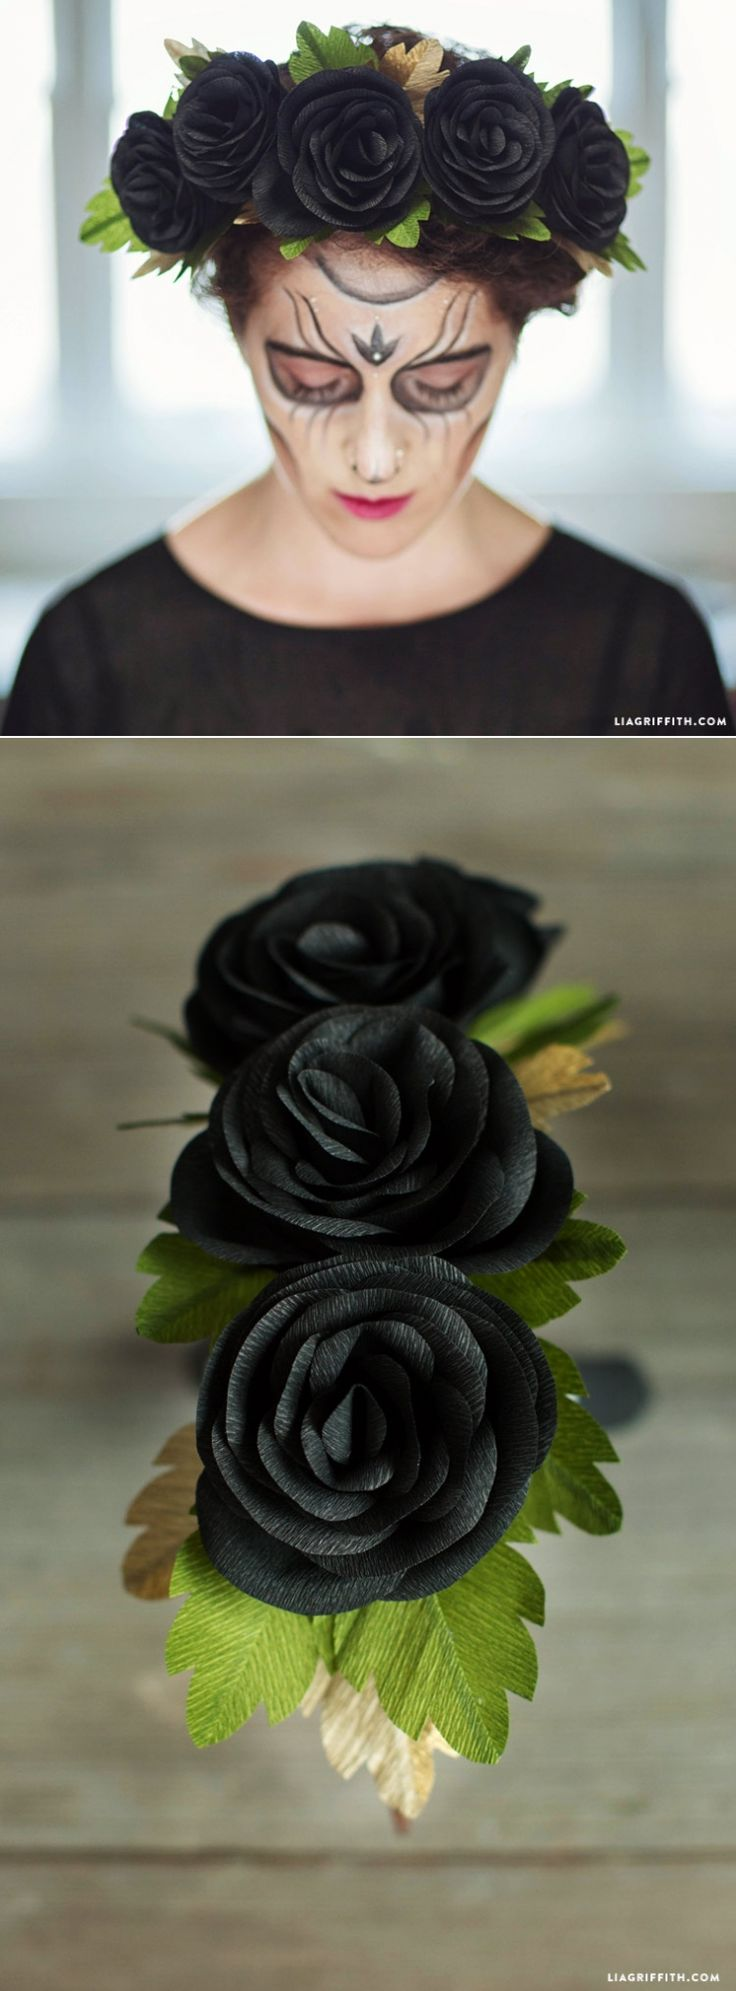 #blackrose #Halloween #dayofdead #crepepaper #paperflower #crepepaperrevival www.LiaGriffith.com